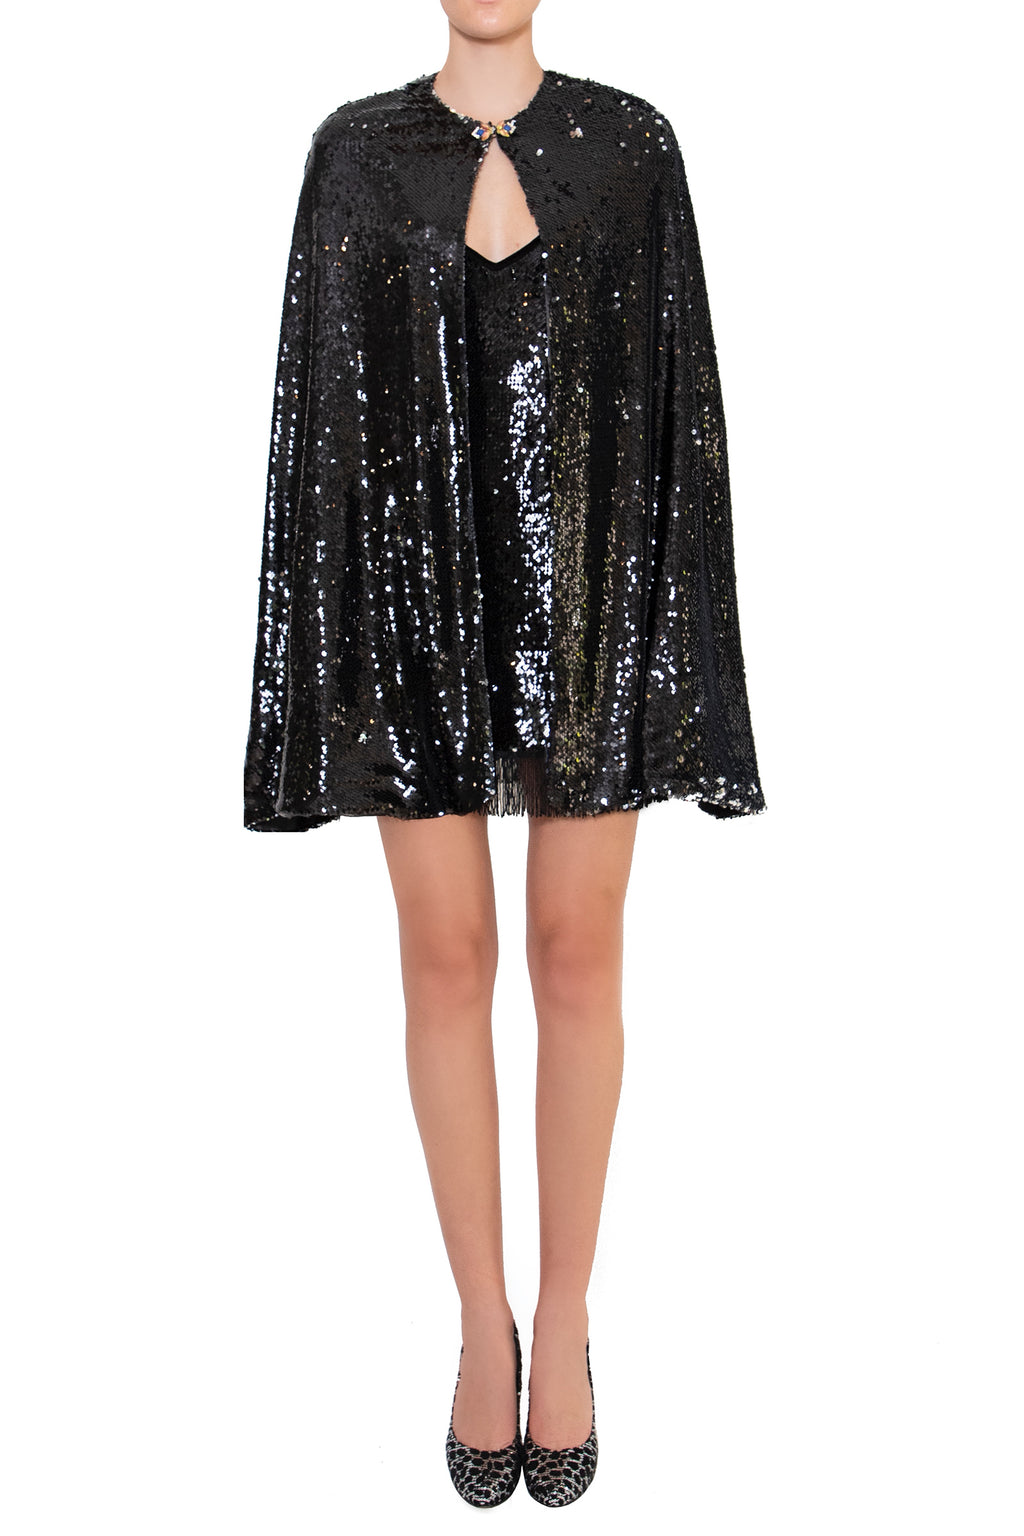 Ilona Rich Black Sequin Cape